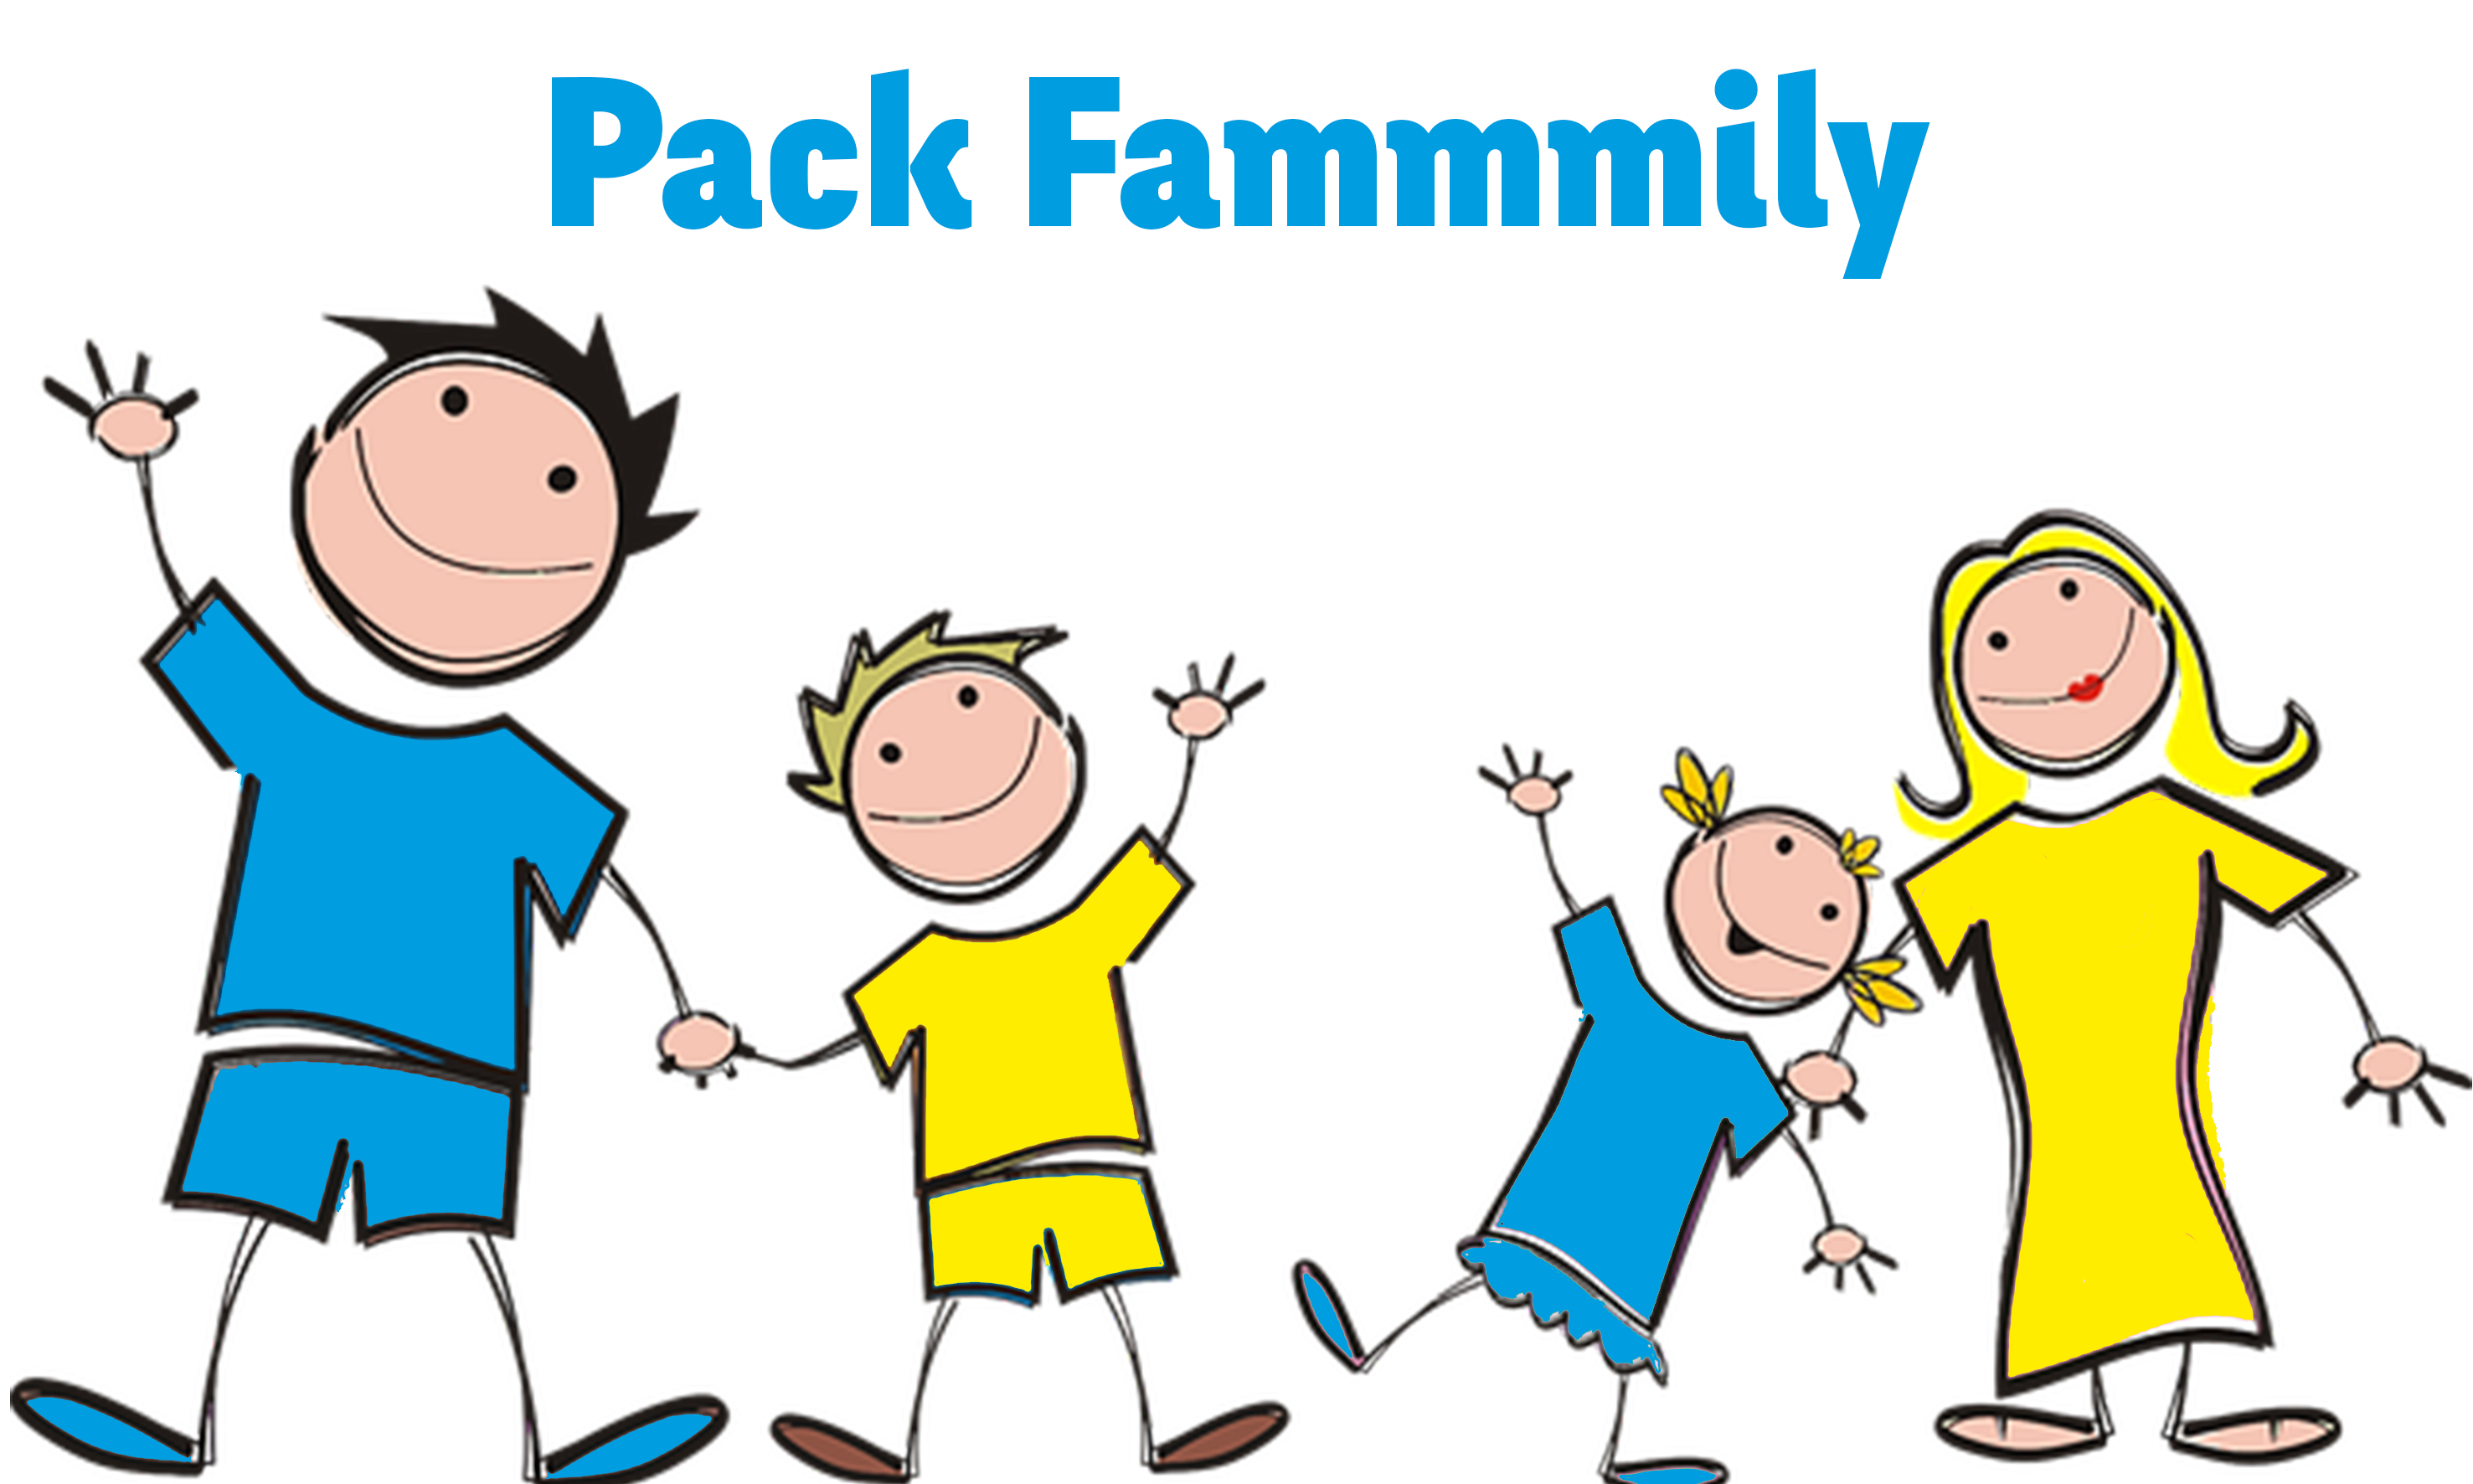 Pack_Fammmily-1464707325.png